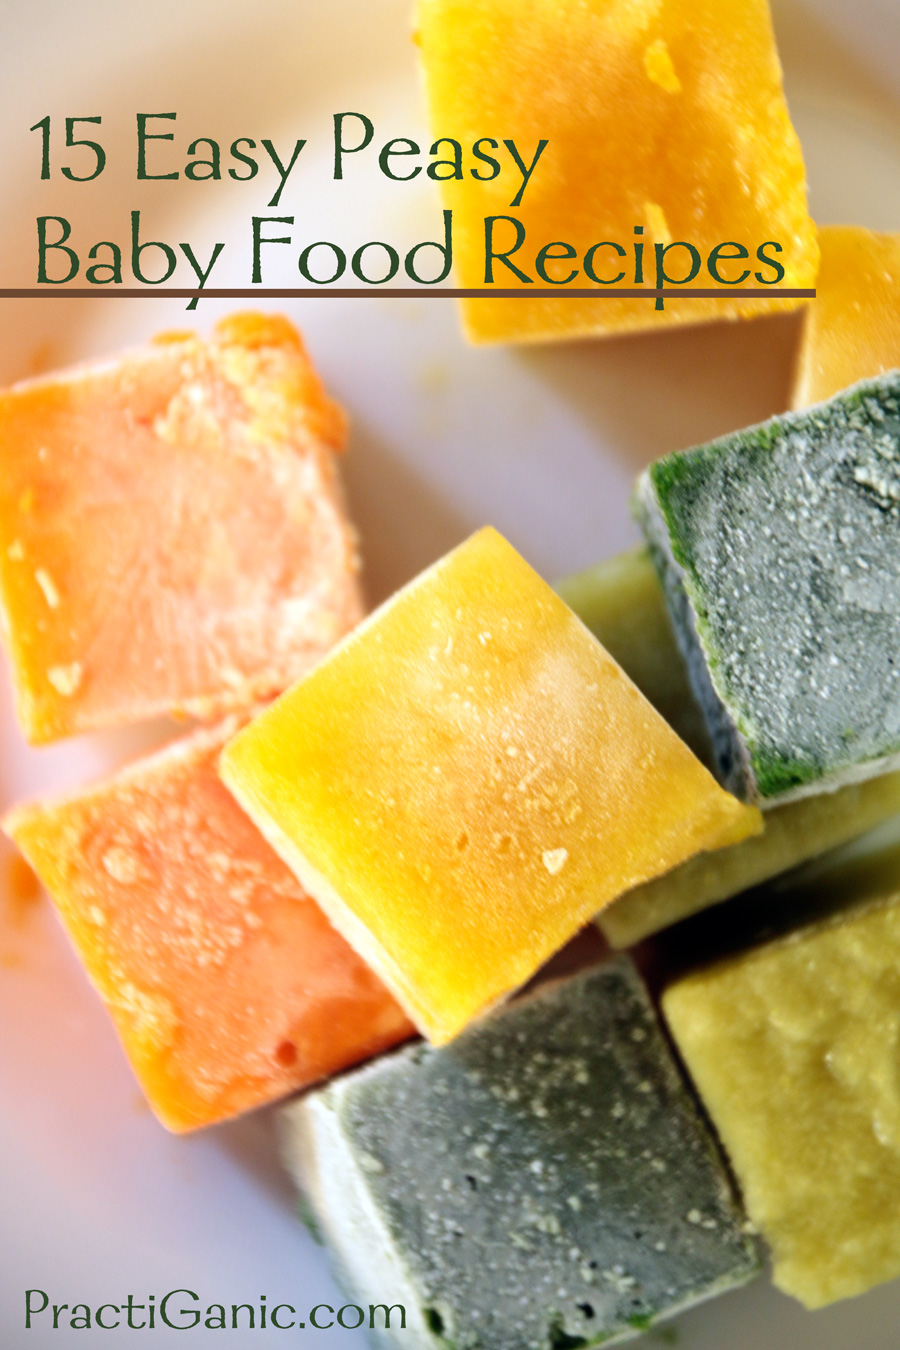 How Long Do You Boil Sweet Potatoes For Baby Food